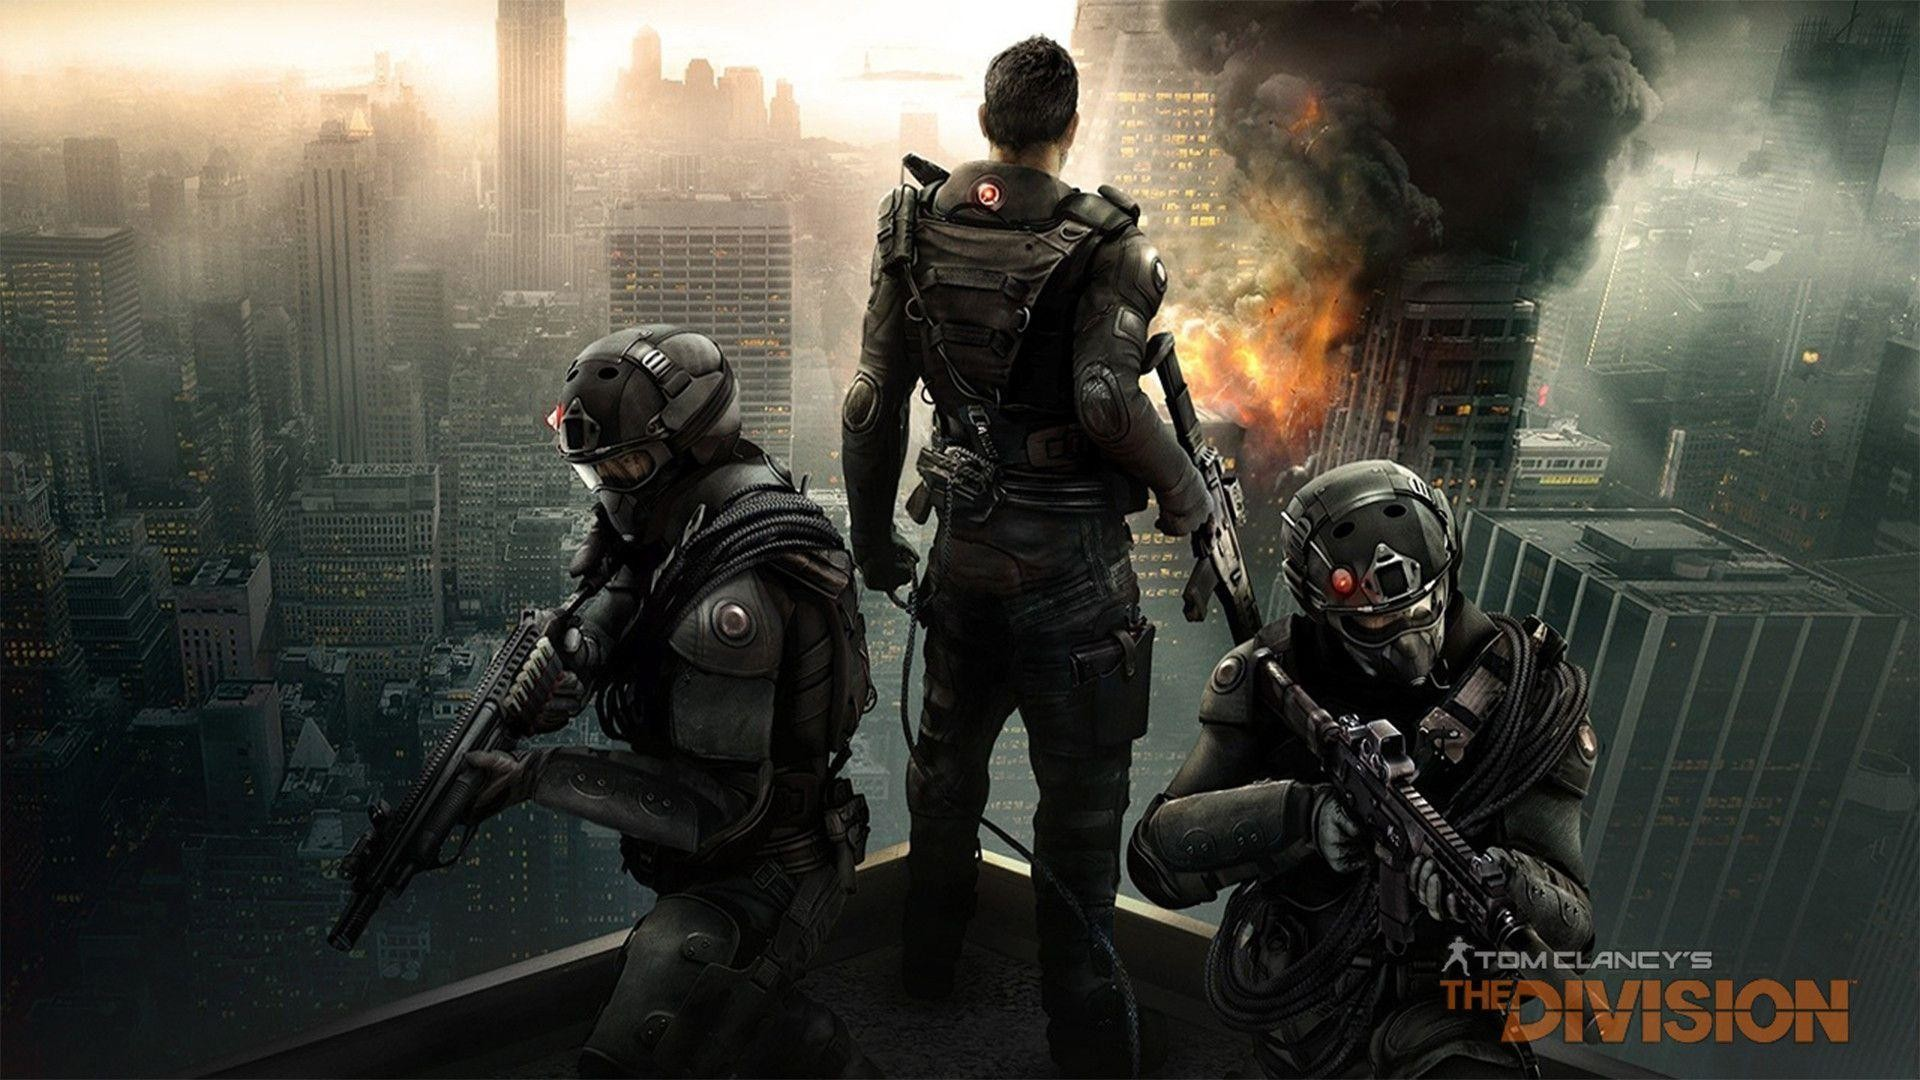 2015 Third Person Shooter Game The Division Wallpaper – 21 .